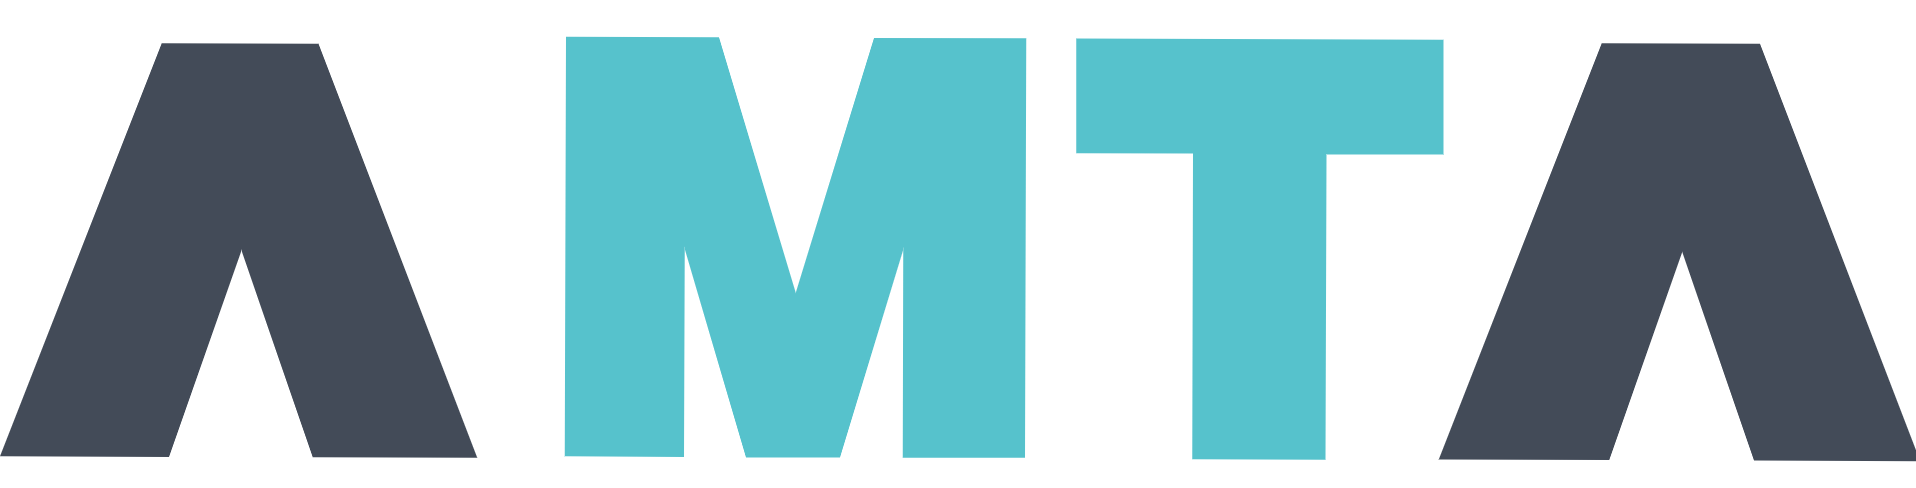 AMTA 2020 |1st Call for Papers, Presentations, Workshops, and Tutorials